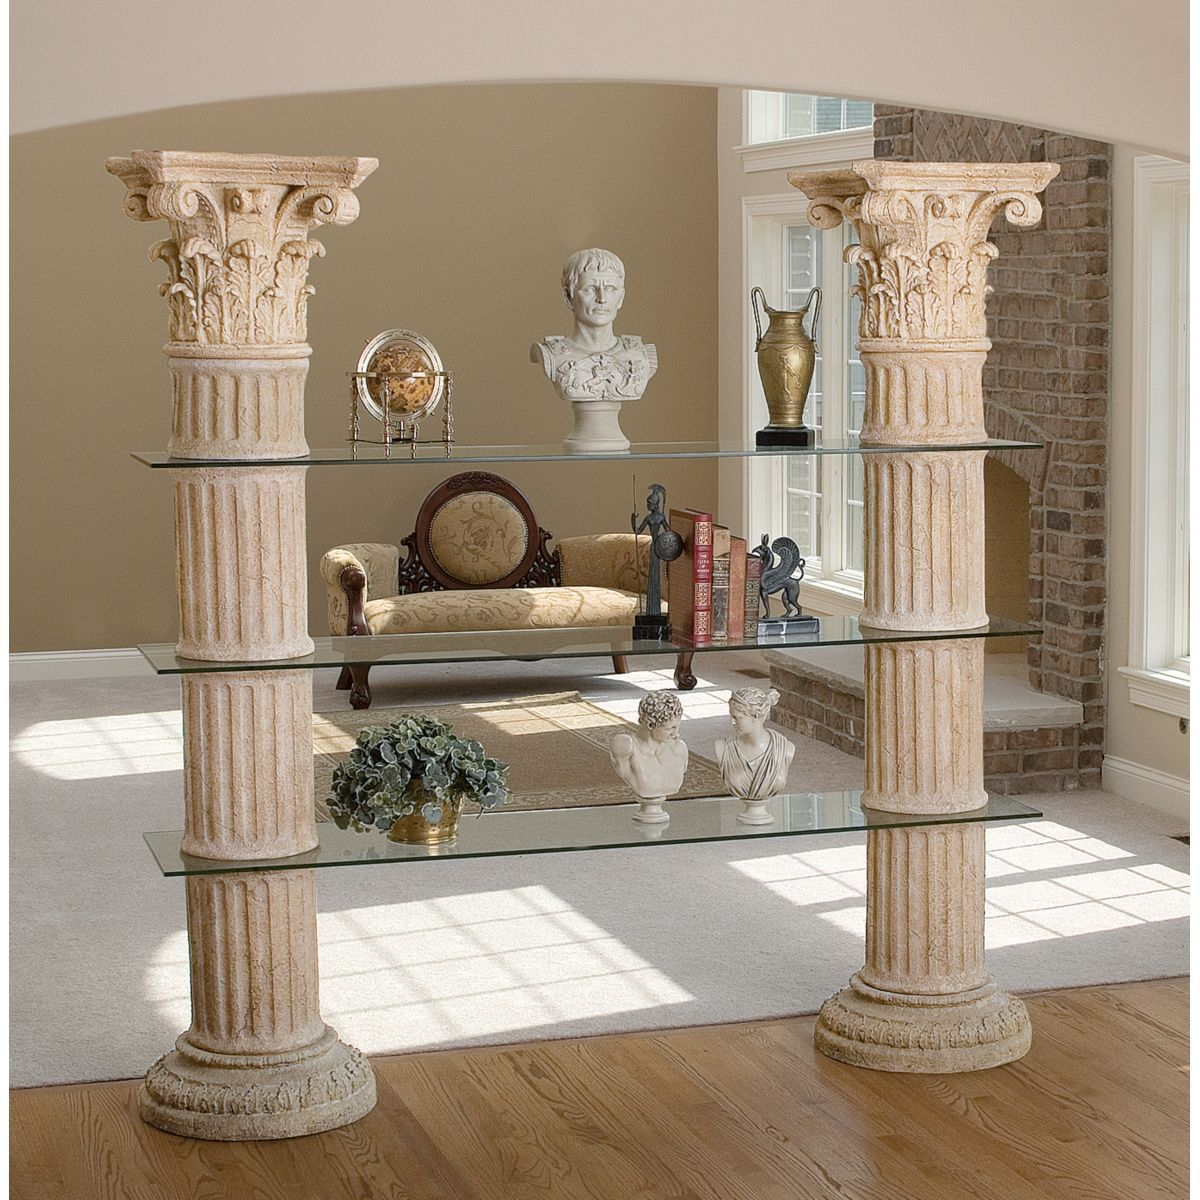 interior design columns - oman Greek living room ideas on Pinterest